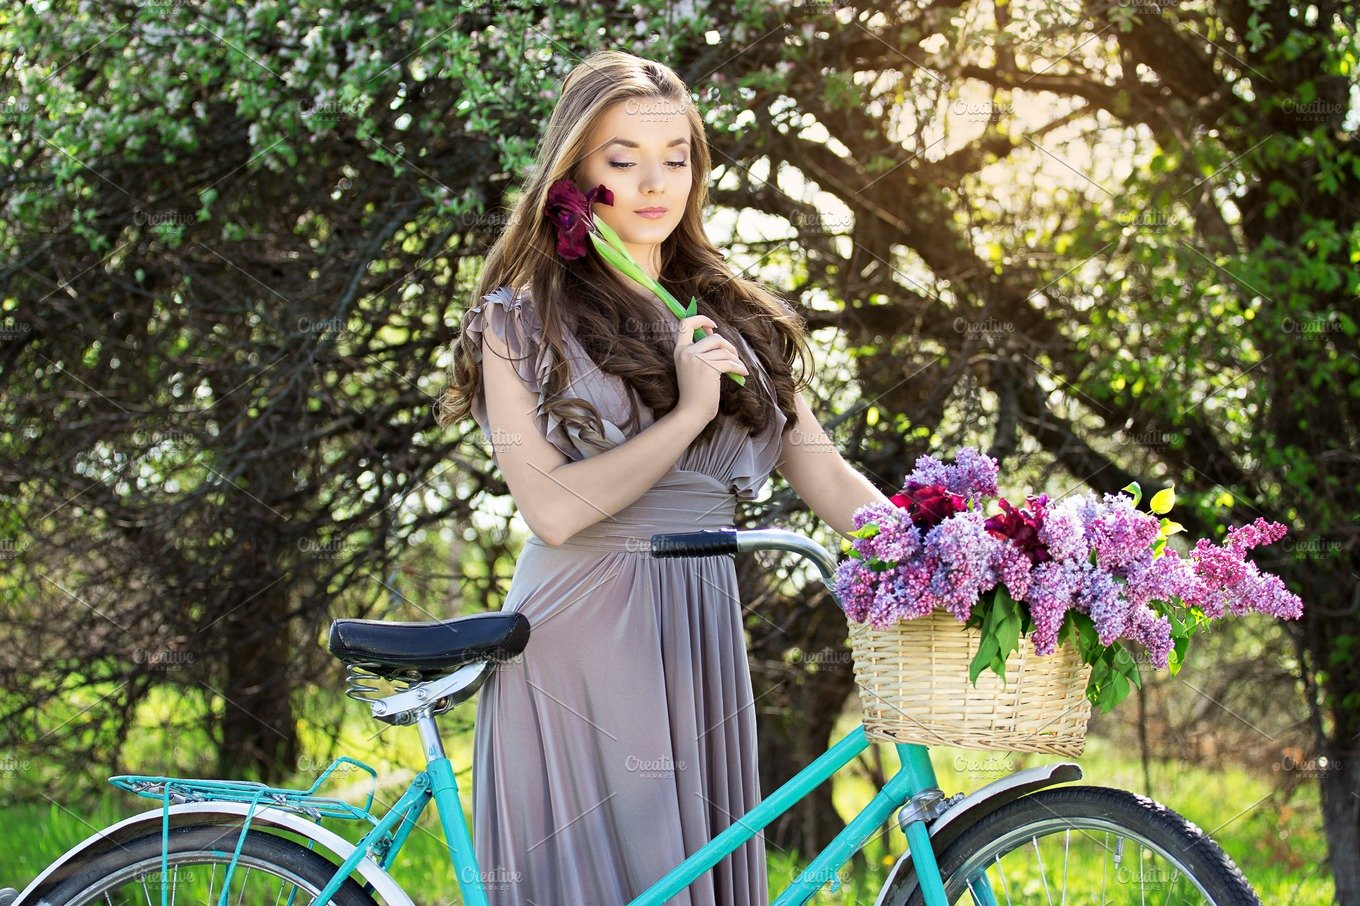 Young Beautiful Girl With Long Hair In Bright Dress With Flowers In